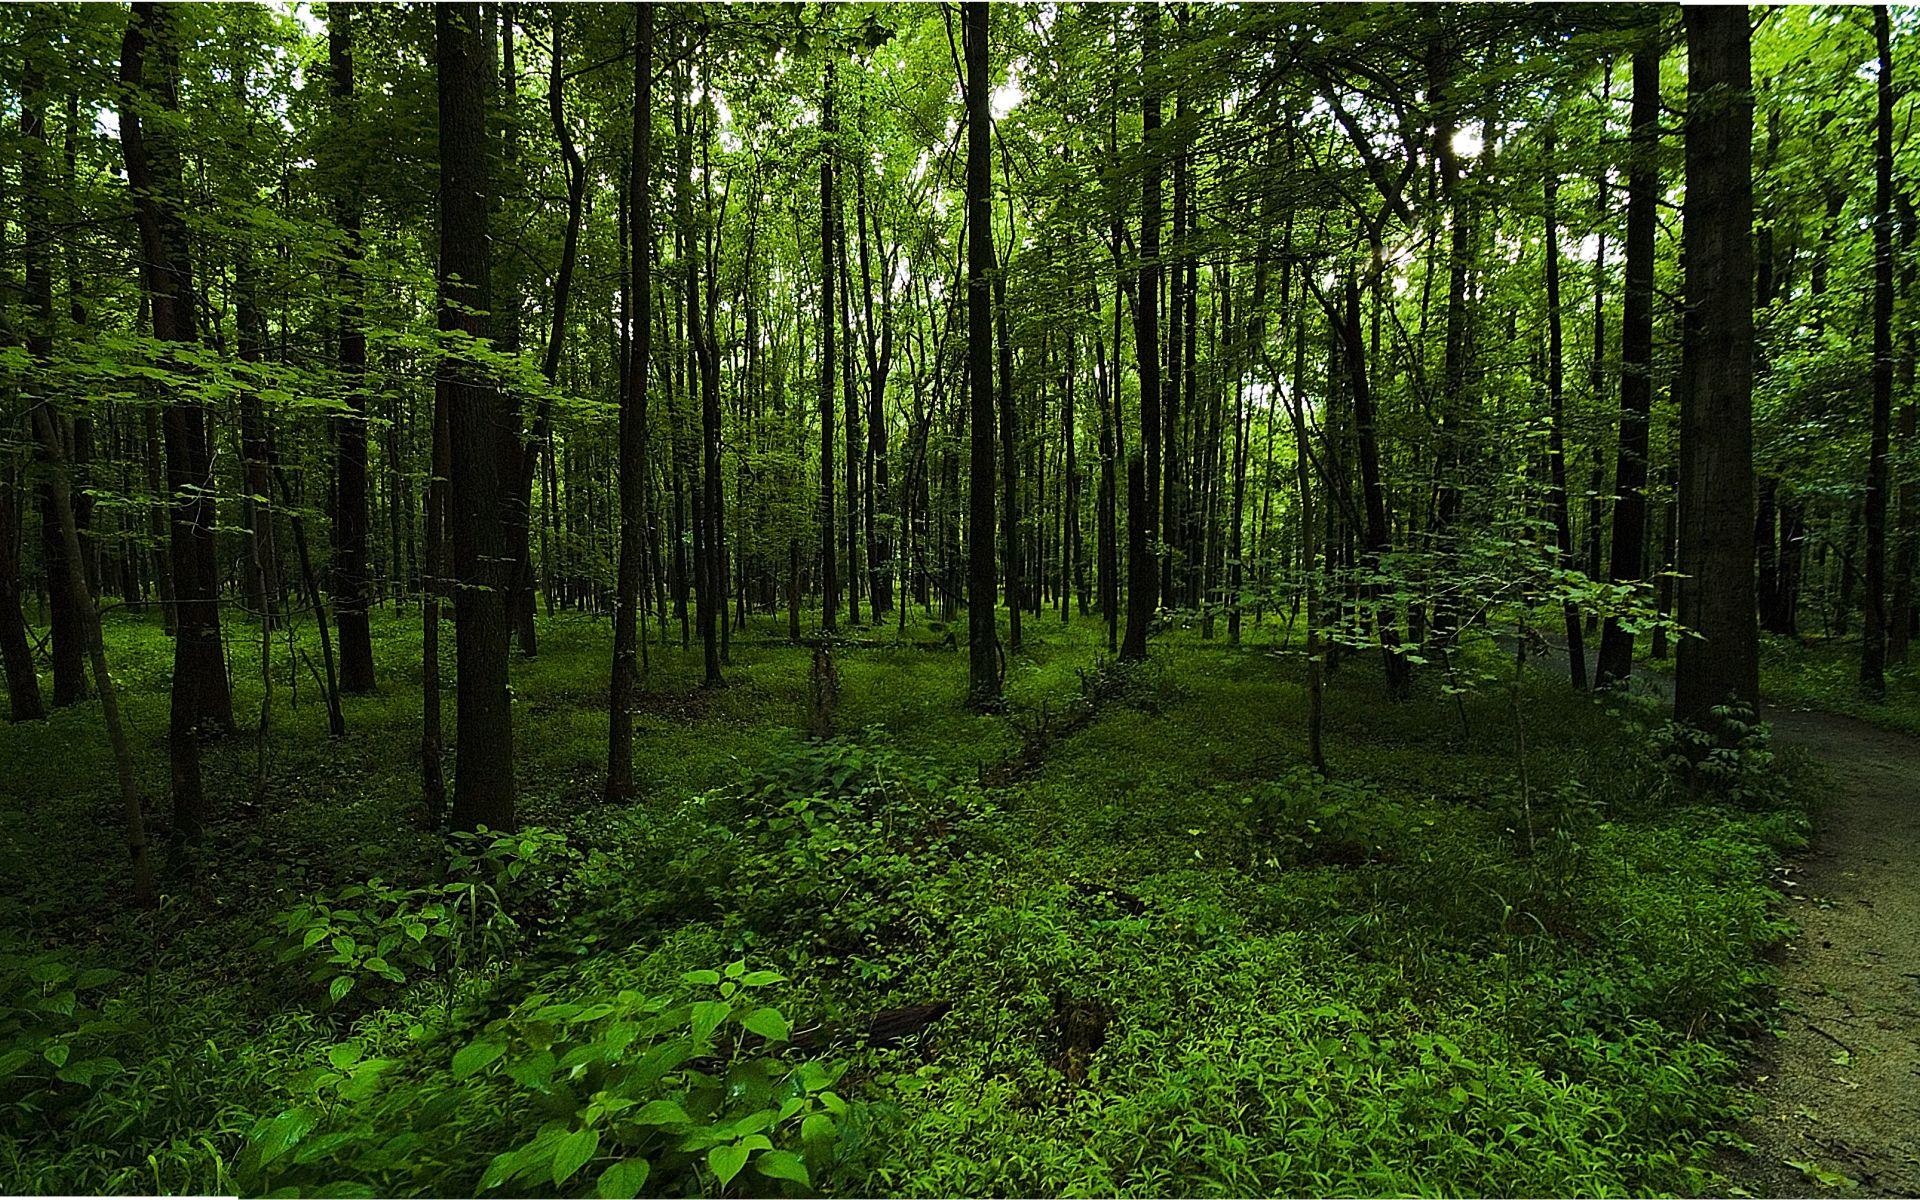 green forest wallpapers green forest hd wallpapers green forest hd 1920x1200